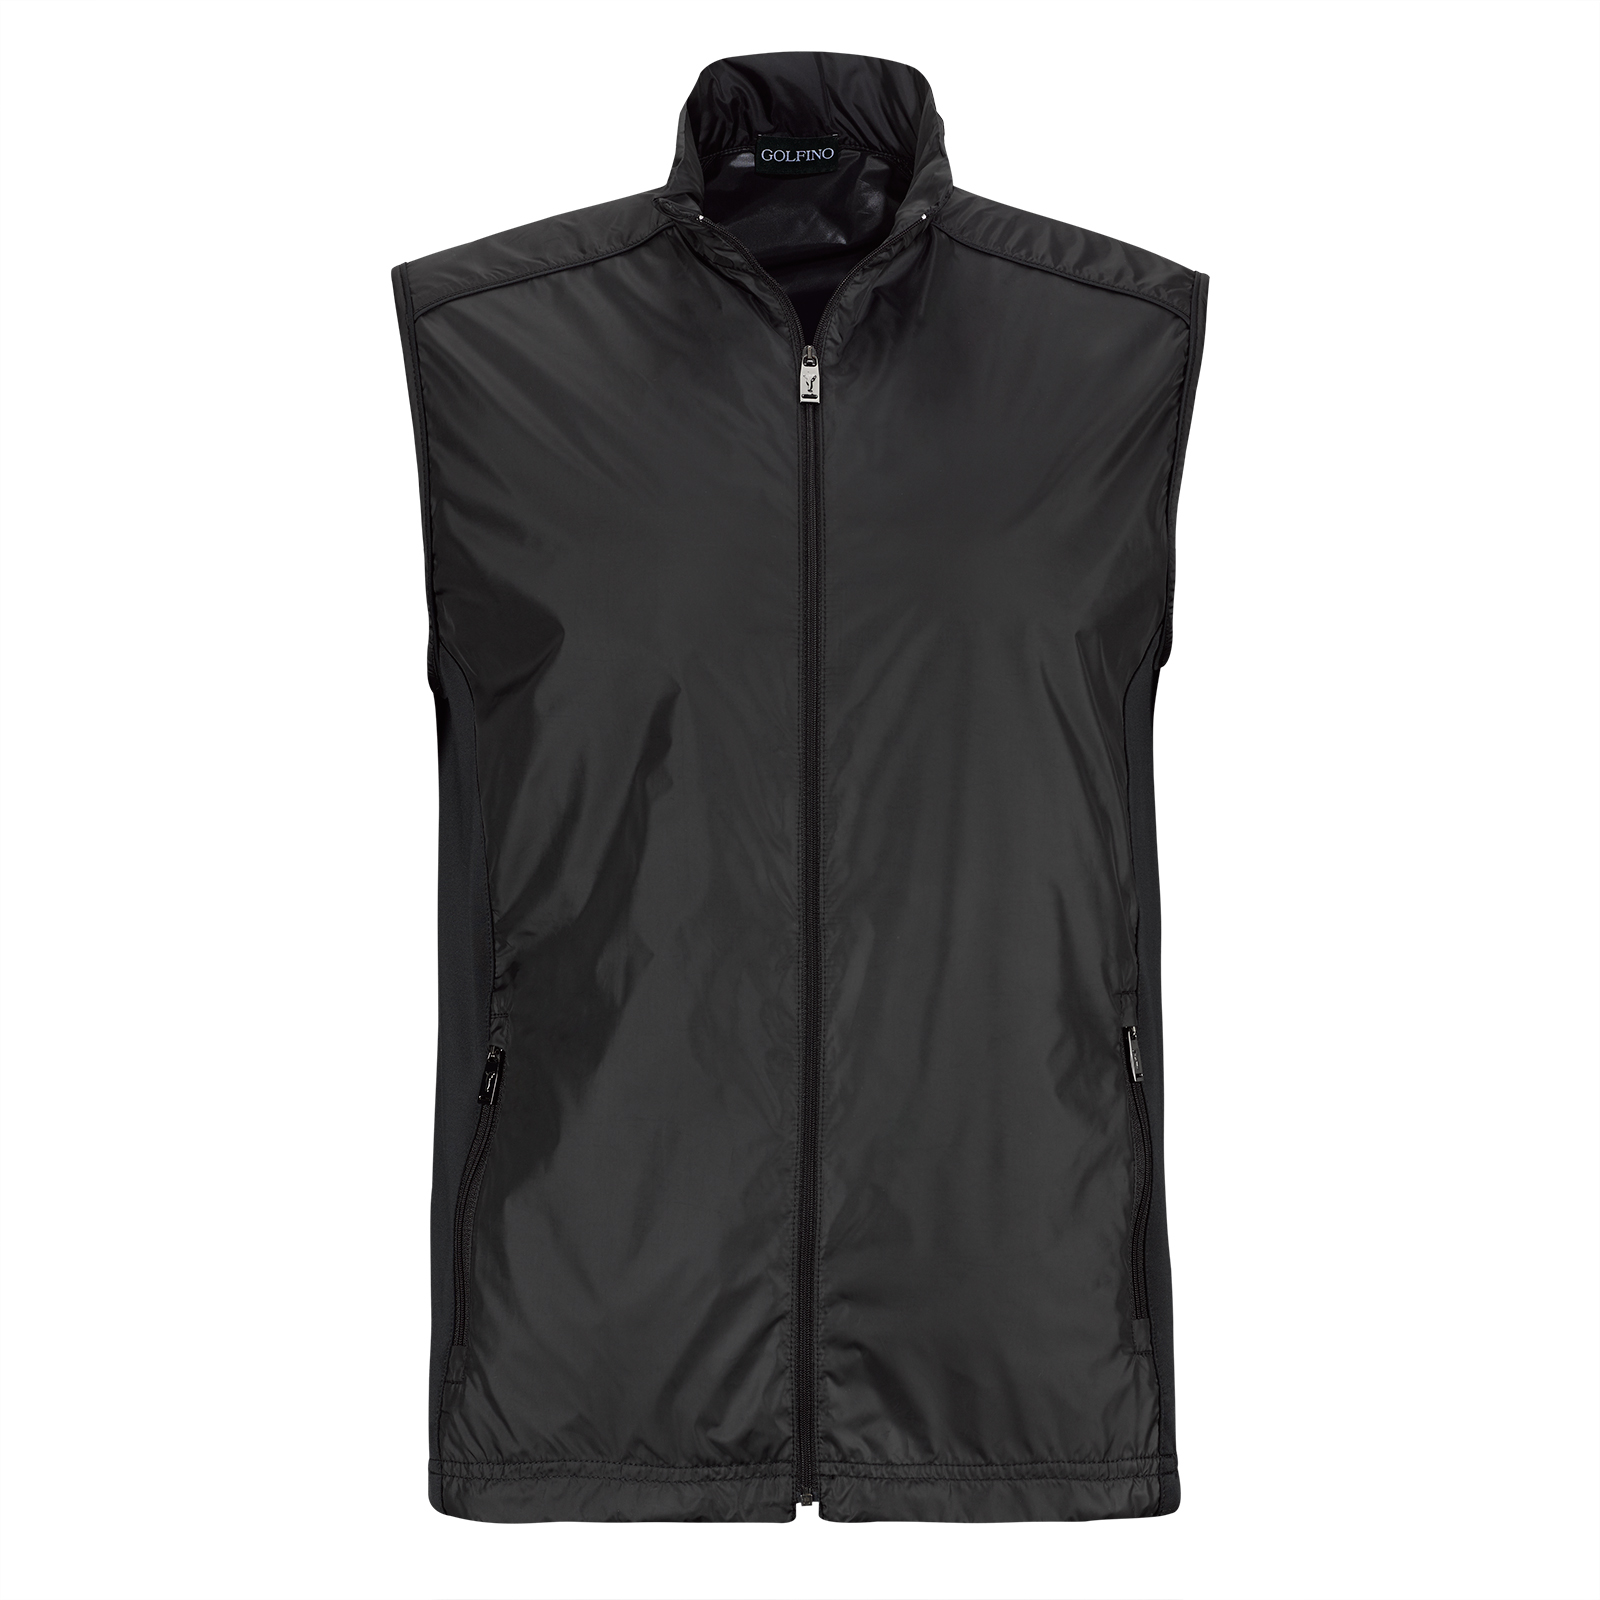 Ultra lightweight and breathable men's windprotection golf vest